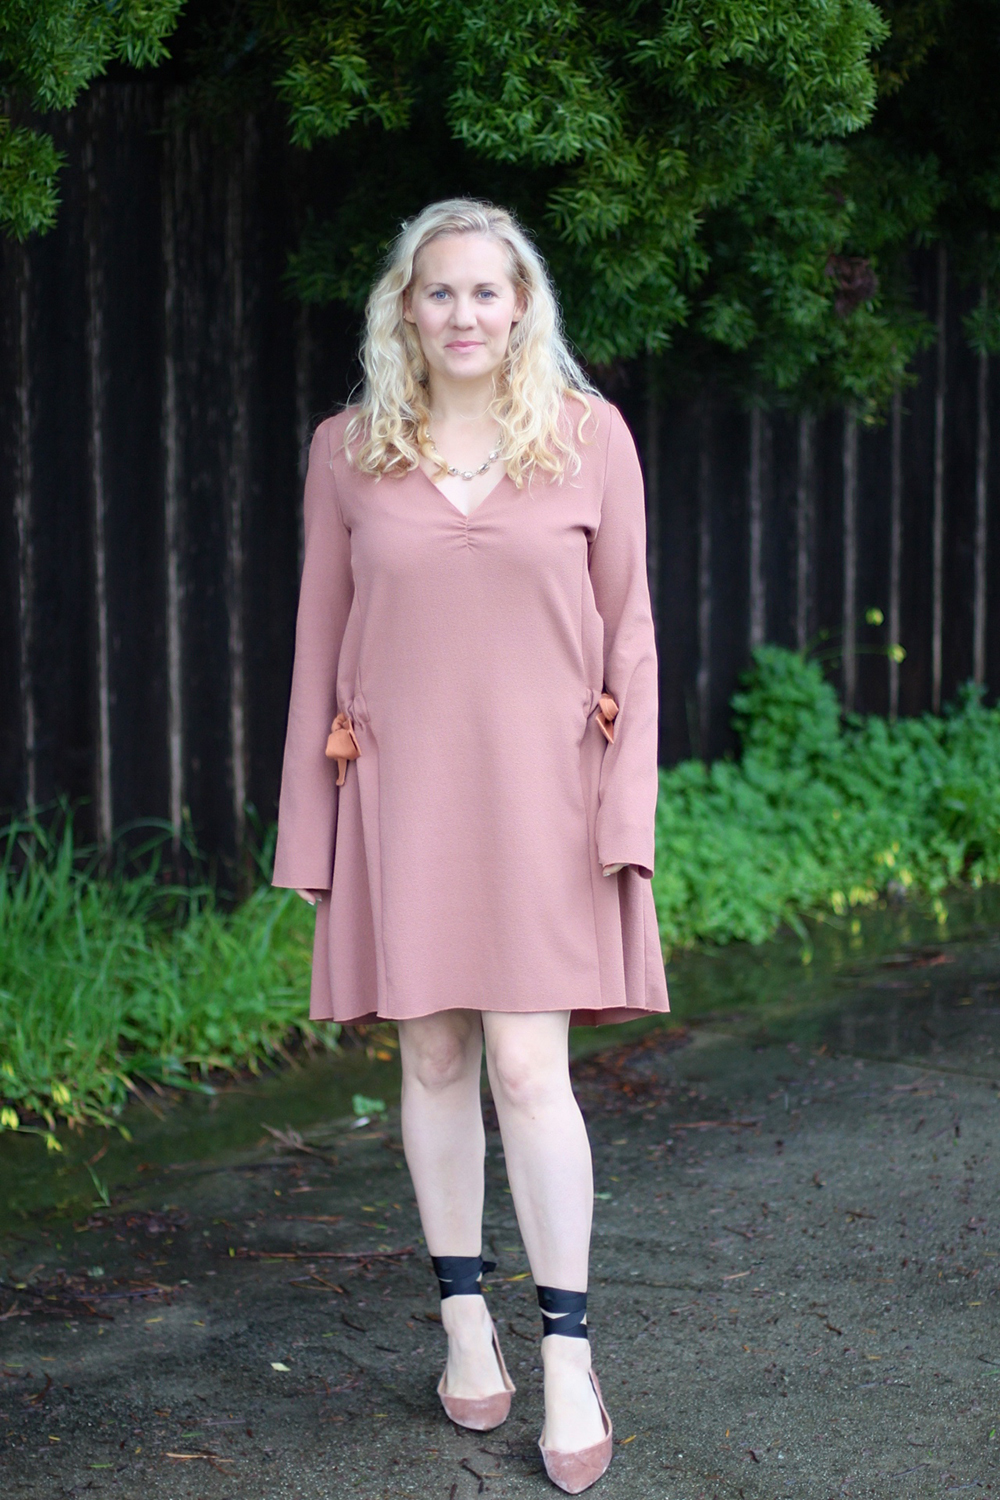 Dusty Pink Dress-See by Chloe-Valentines Day Outfit-Outfit Inspiration-Ankle Tie Flats-Have Need Want 2